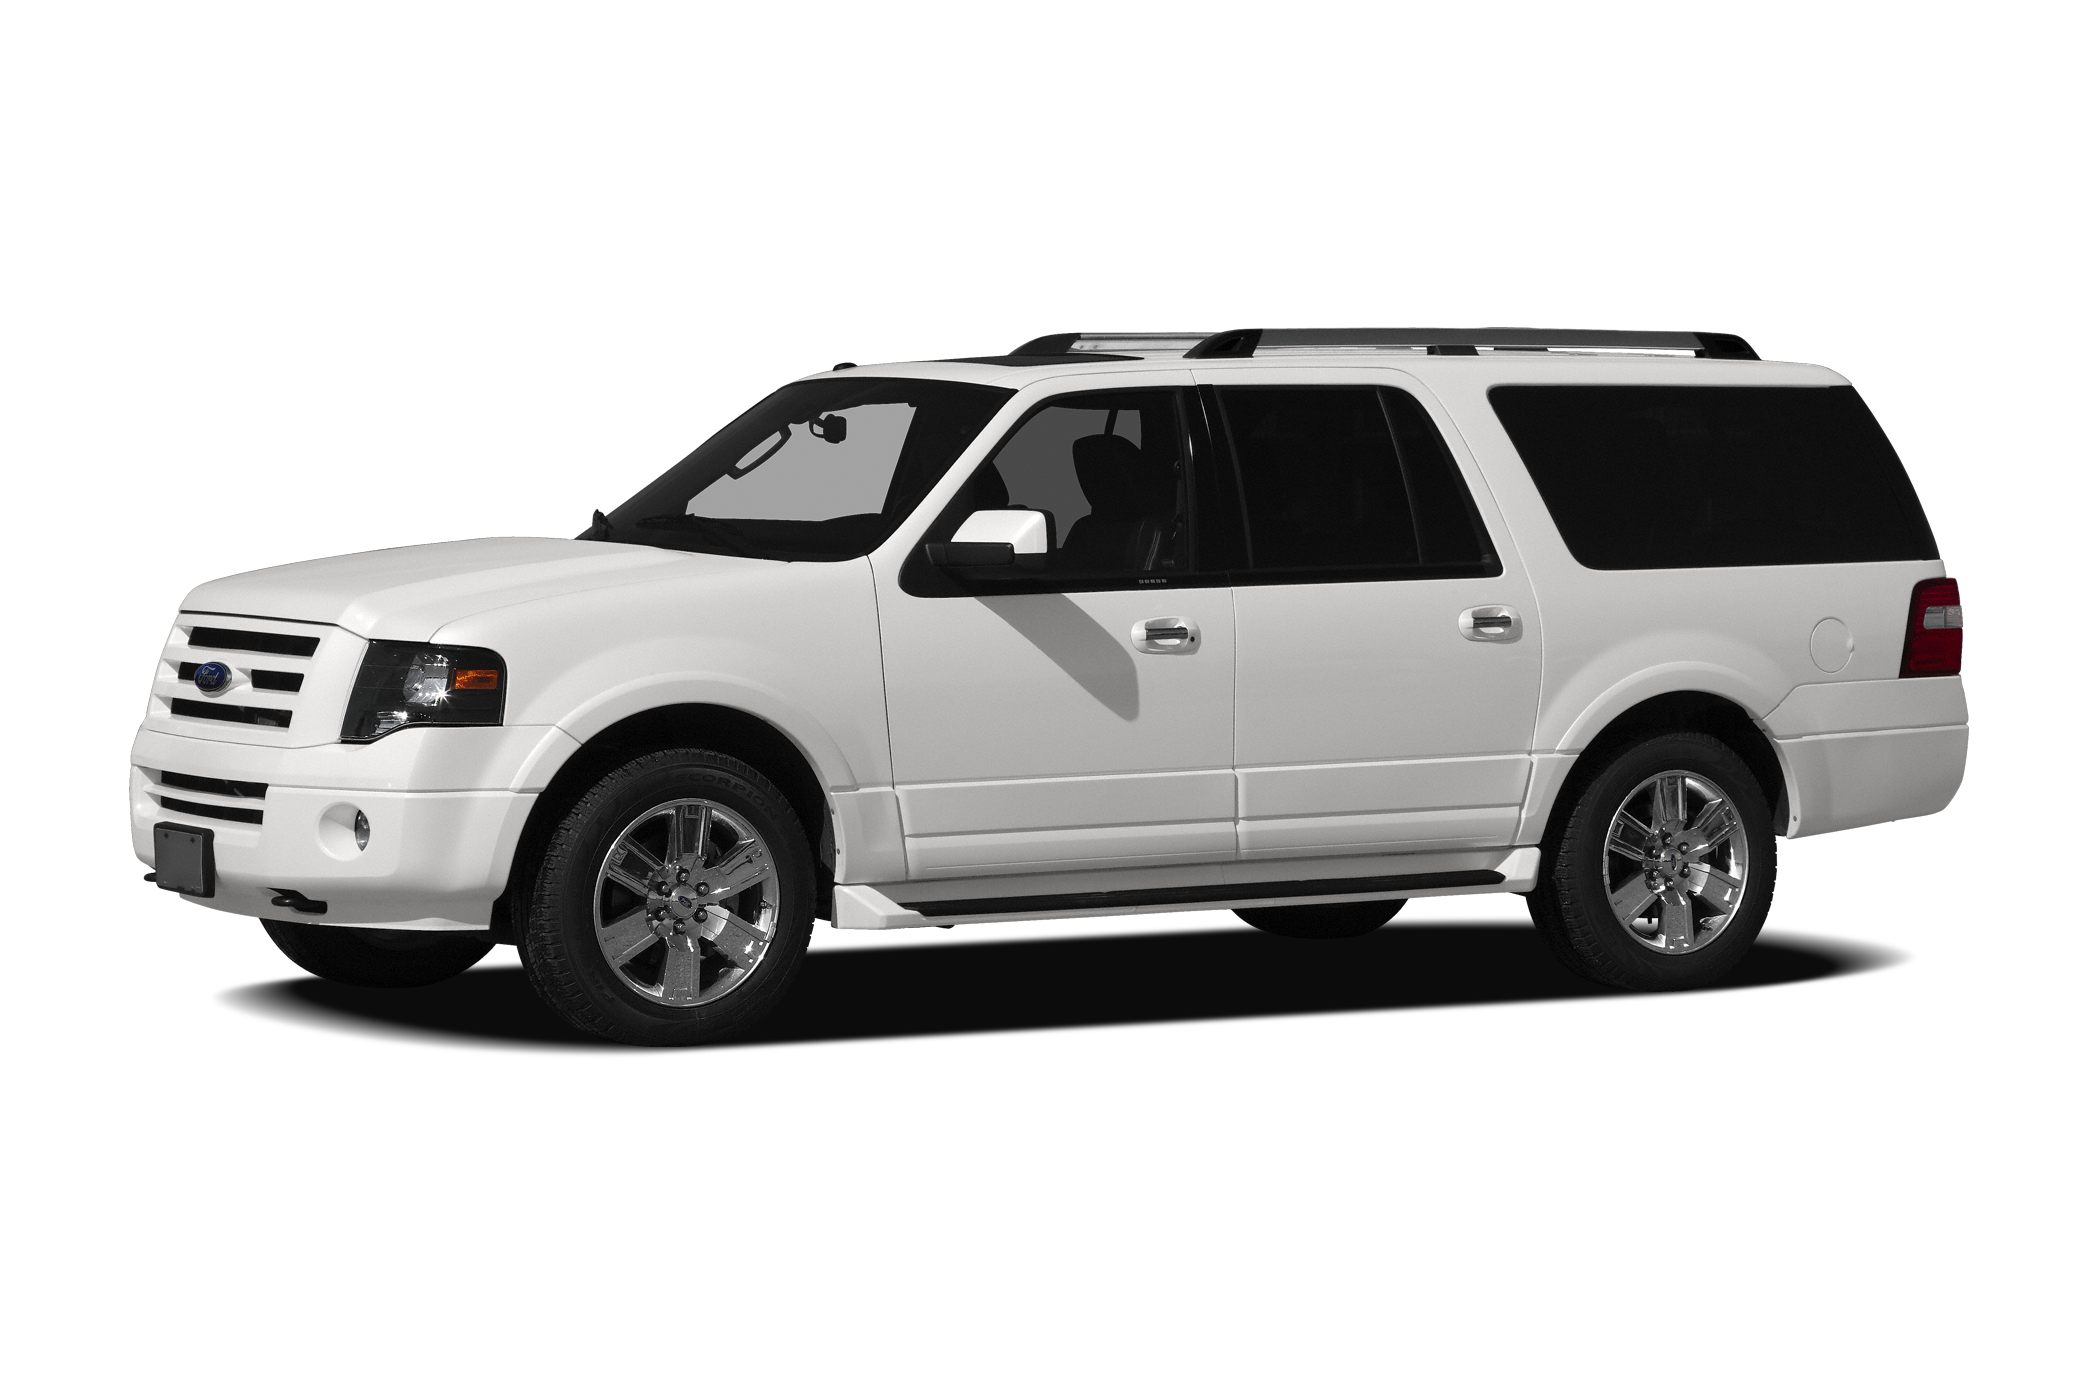 2012 Ford Expedition EL XLT SUV for sale in Miami for $25,988 with 38,362 miles.